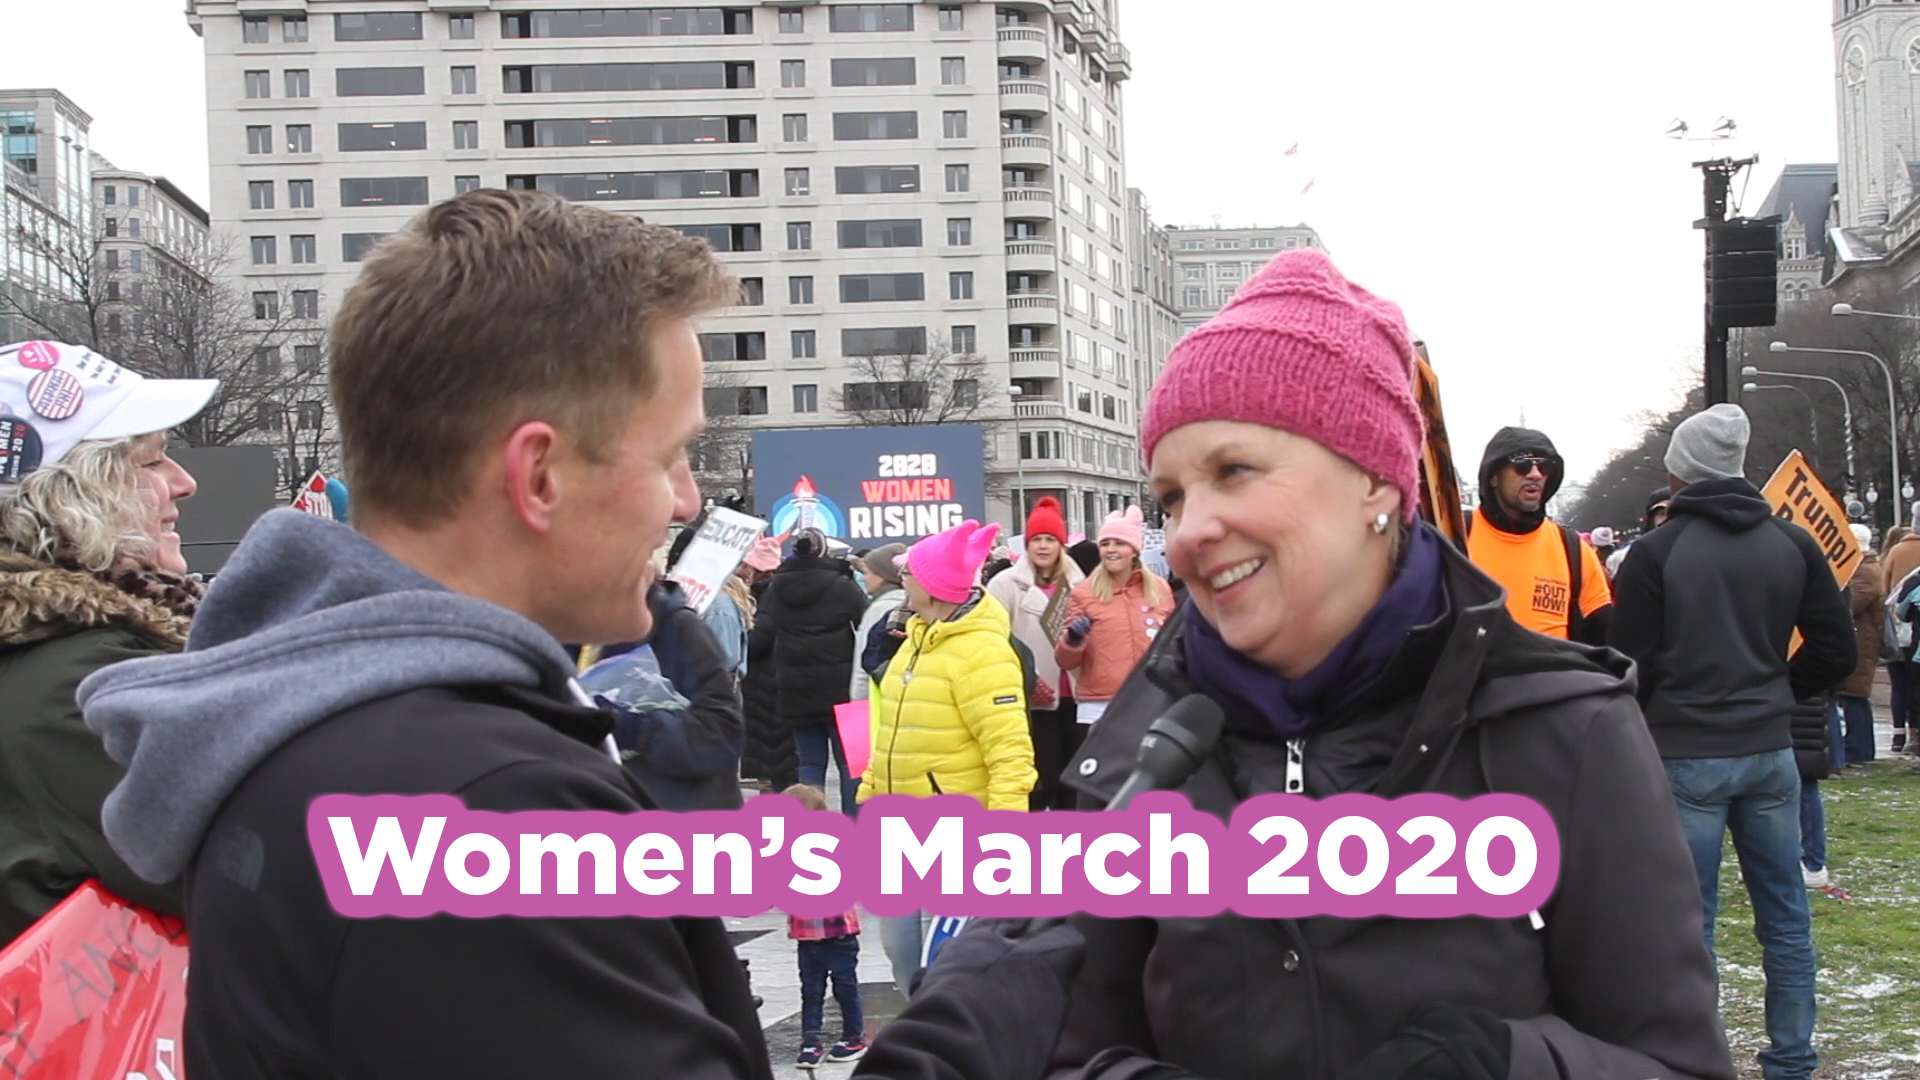 How Does the Women's March Define What a Woman Is?